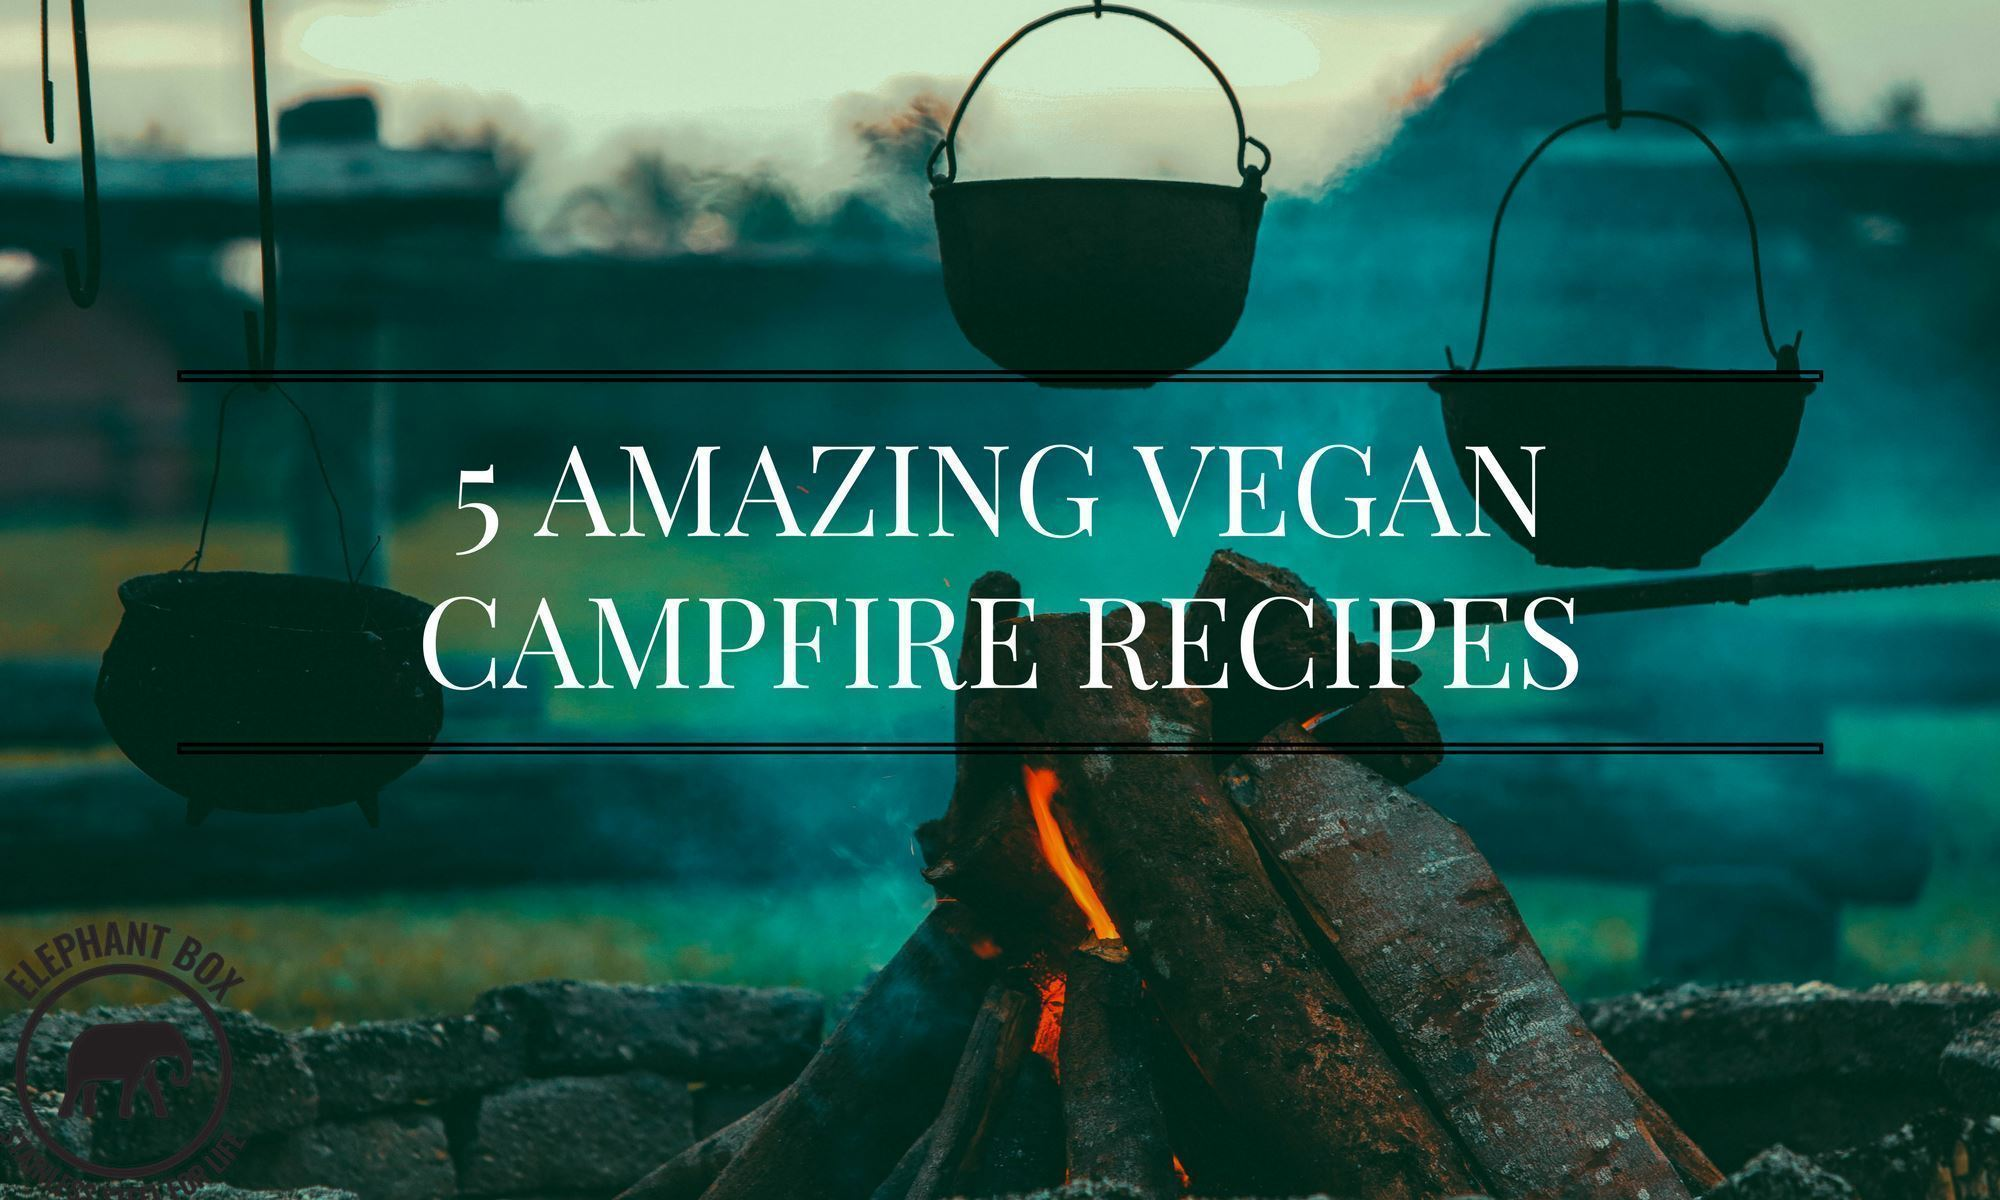 5 Amazing Vegan Campfire Recipes